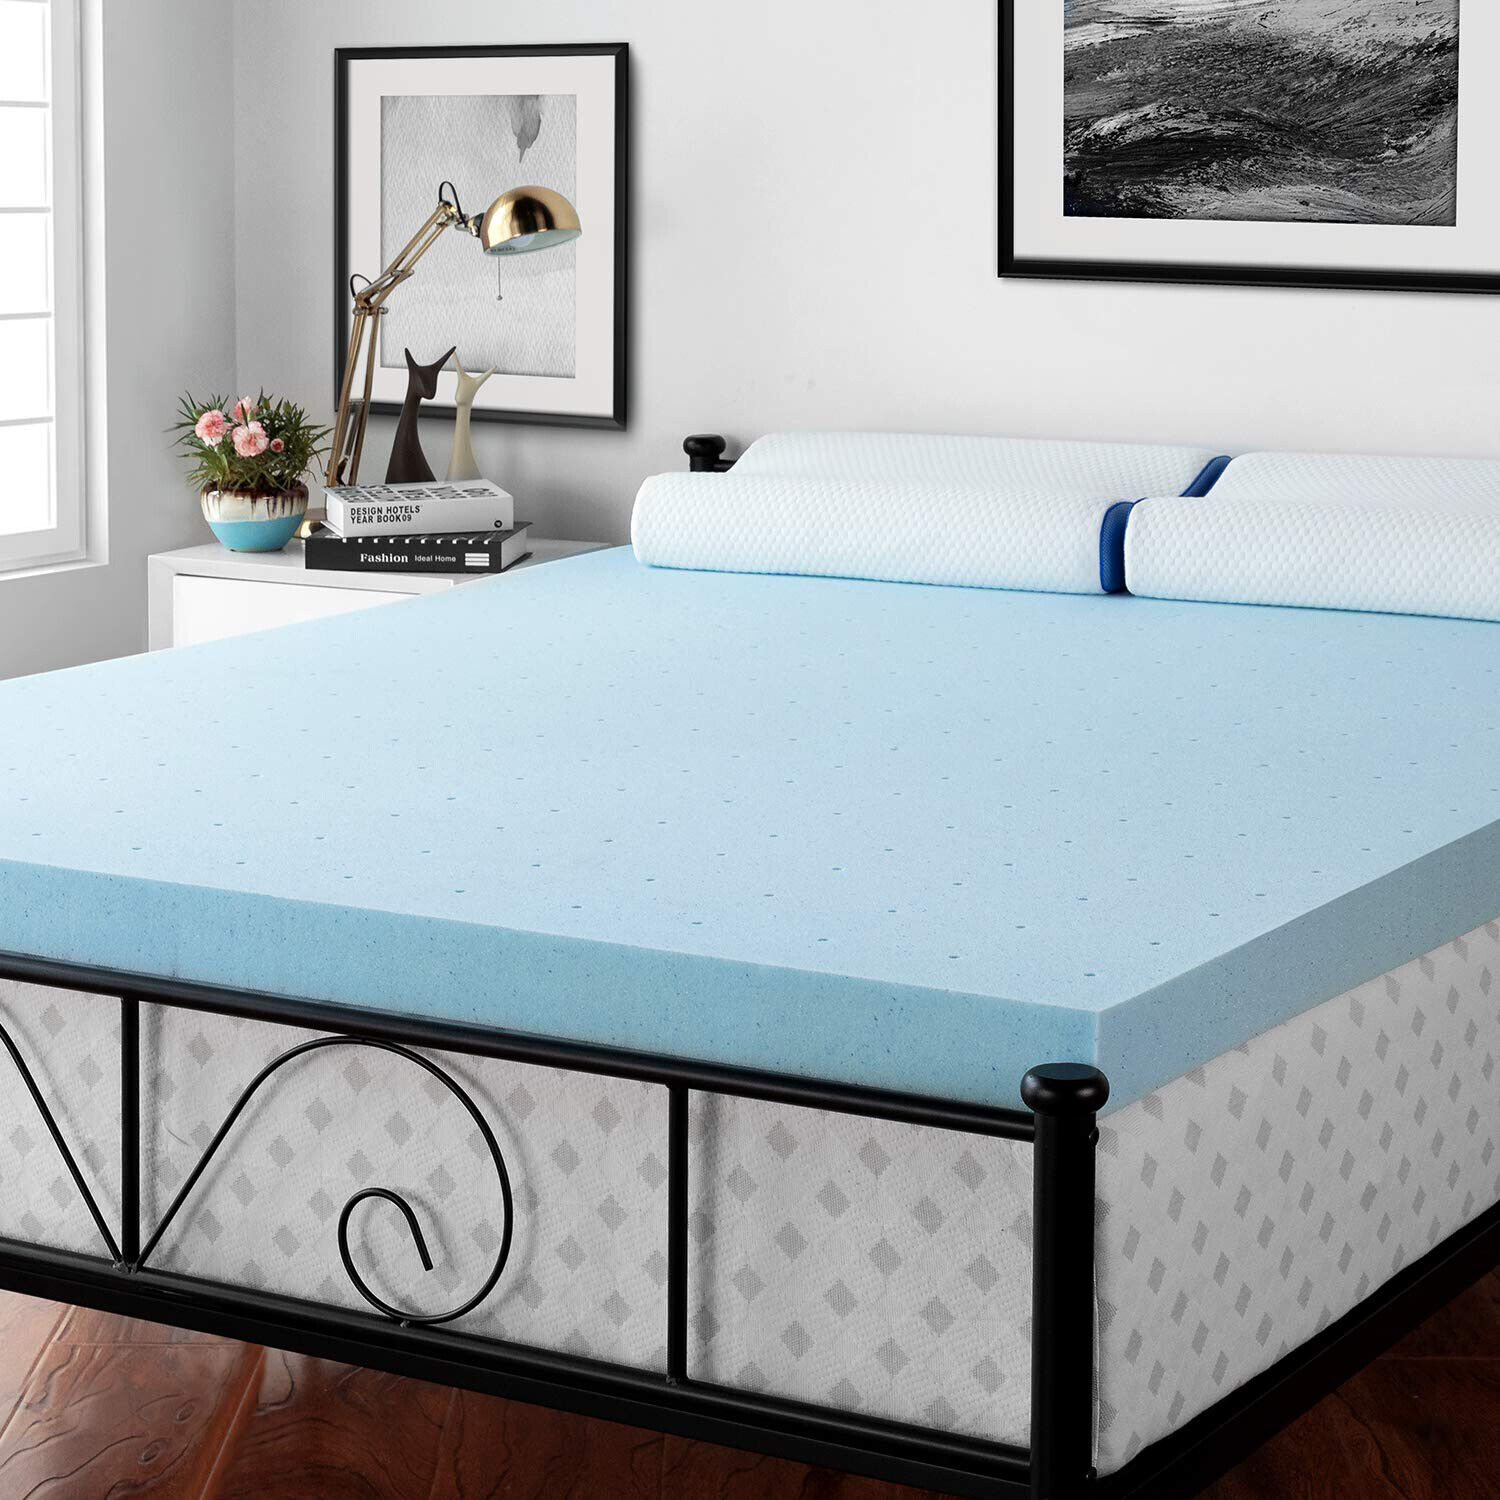 3 Inch Cooling Matress Topper Ventilated GelInfused Memory Foam Mattress Relief